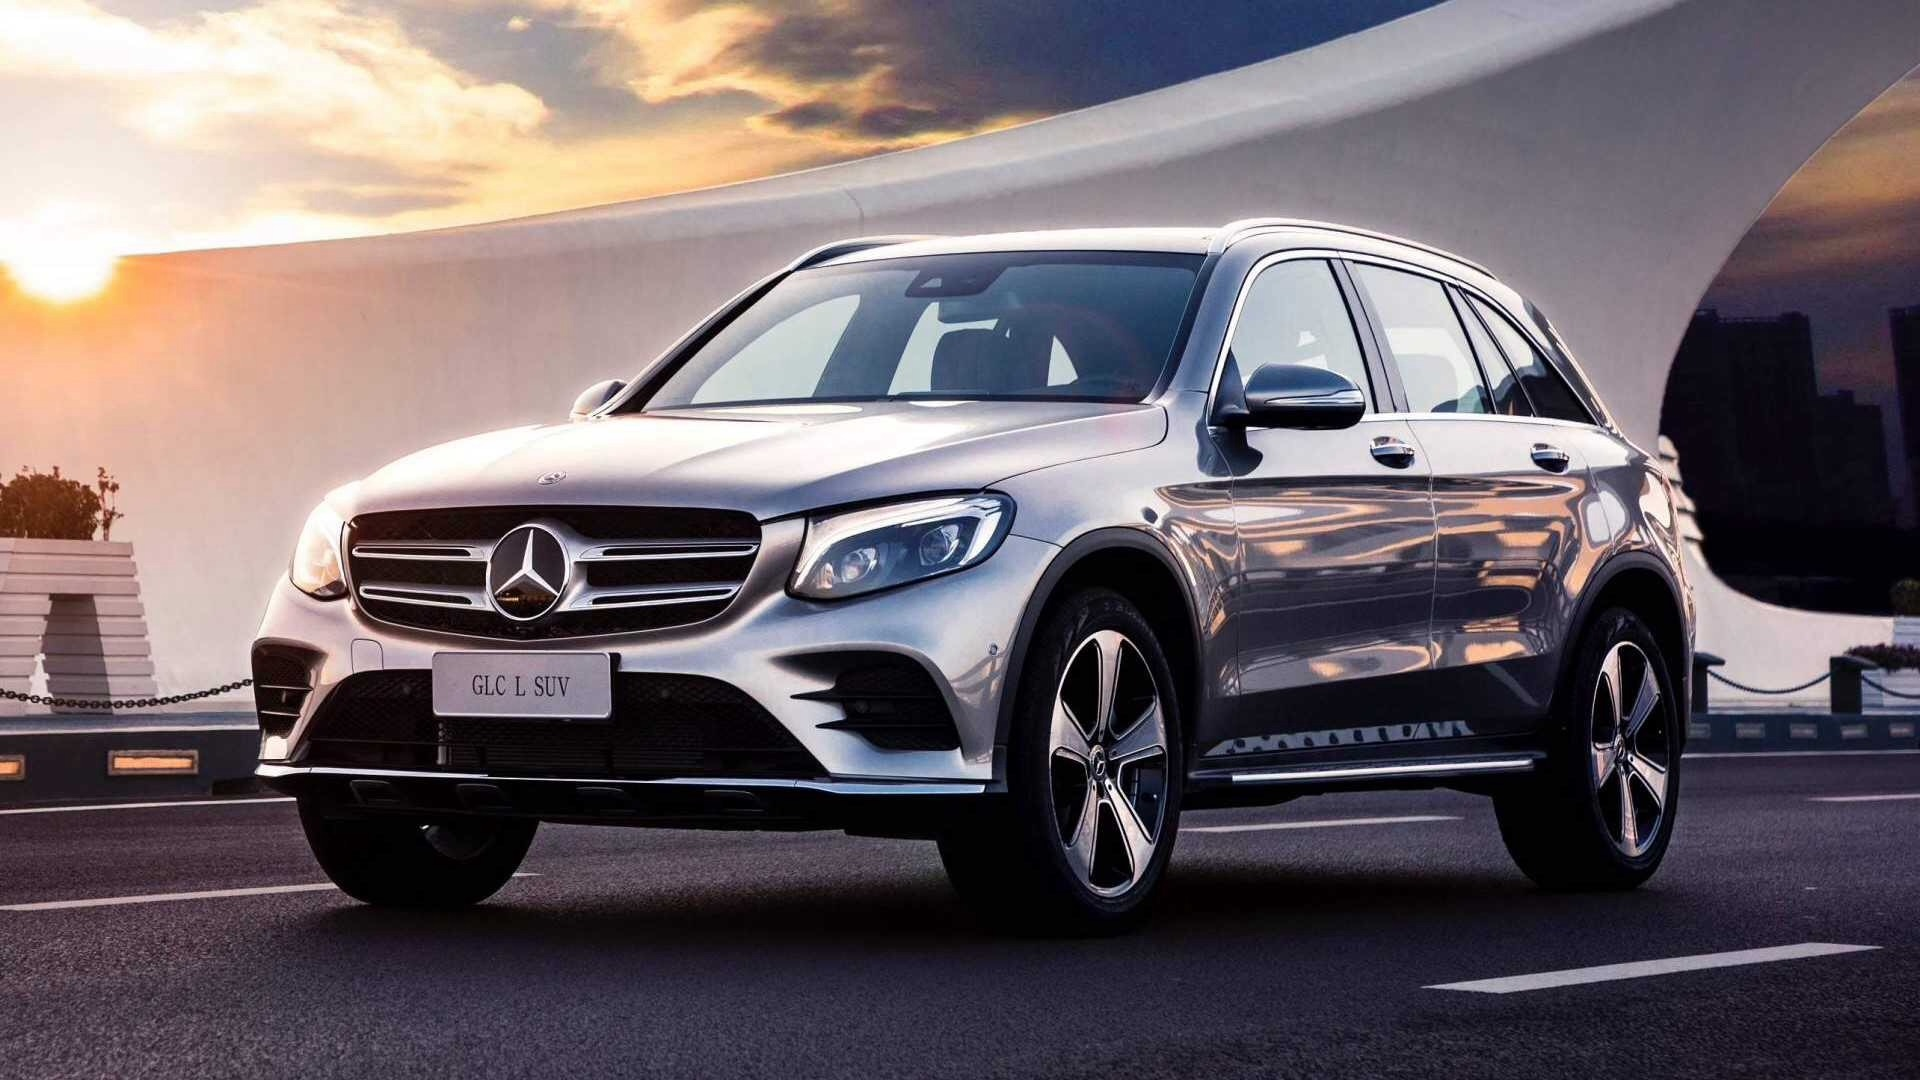 Mercedes GLC L Is A Long-Wheelbase SUV Only For China